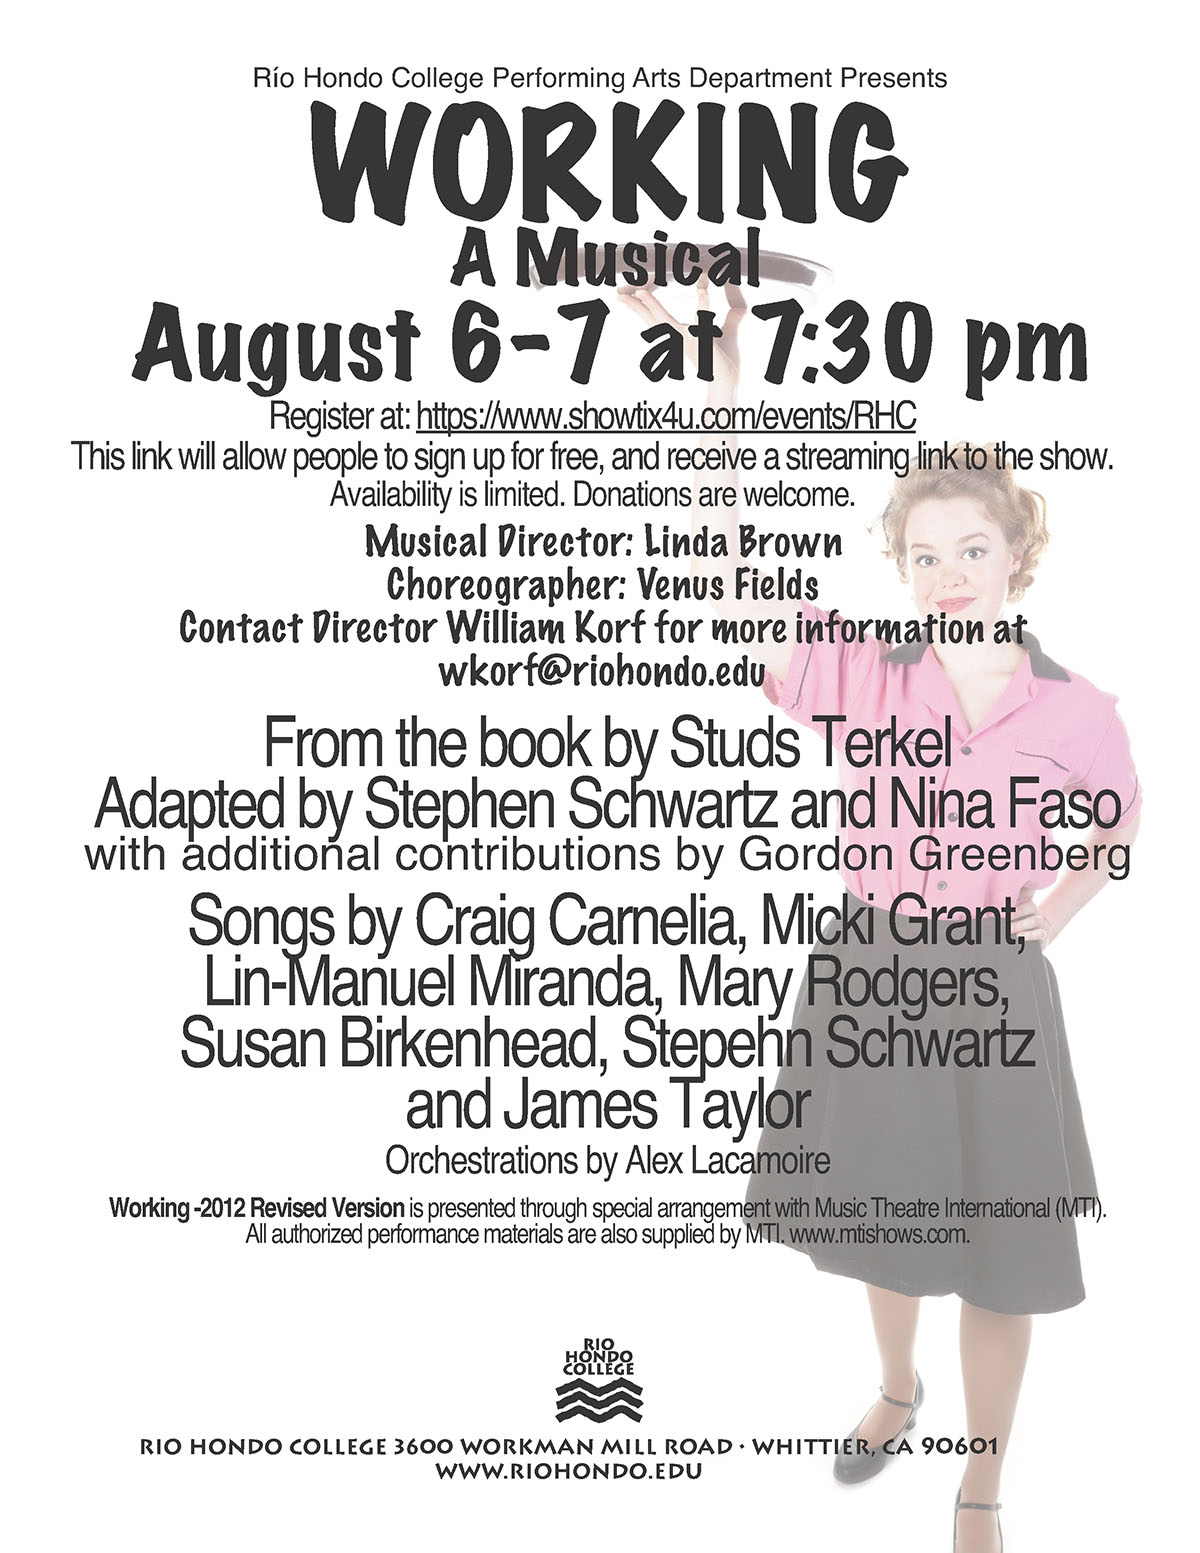 Working - A musical